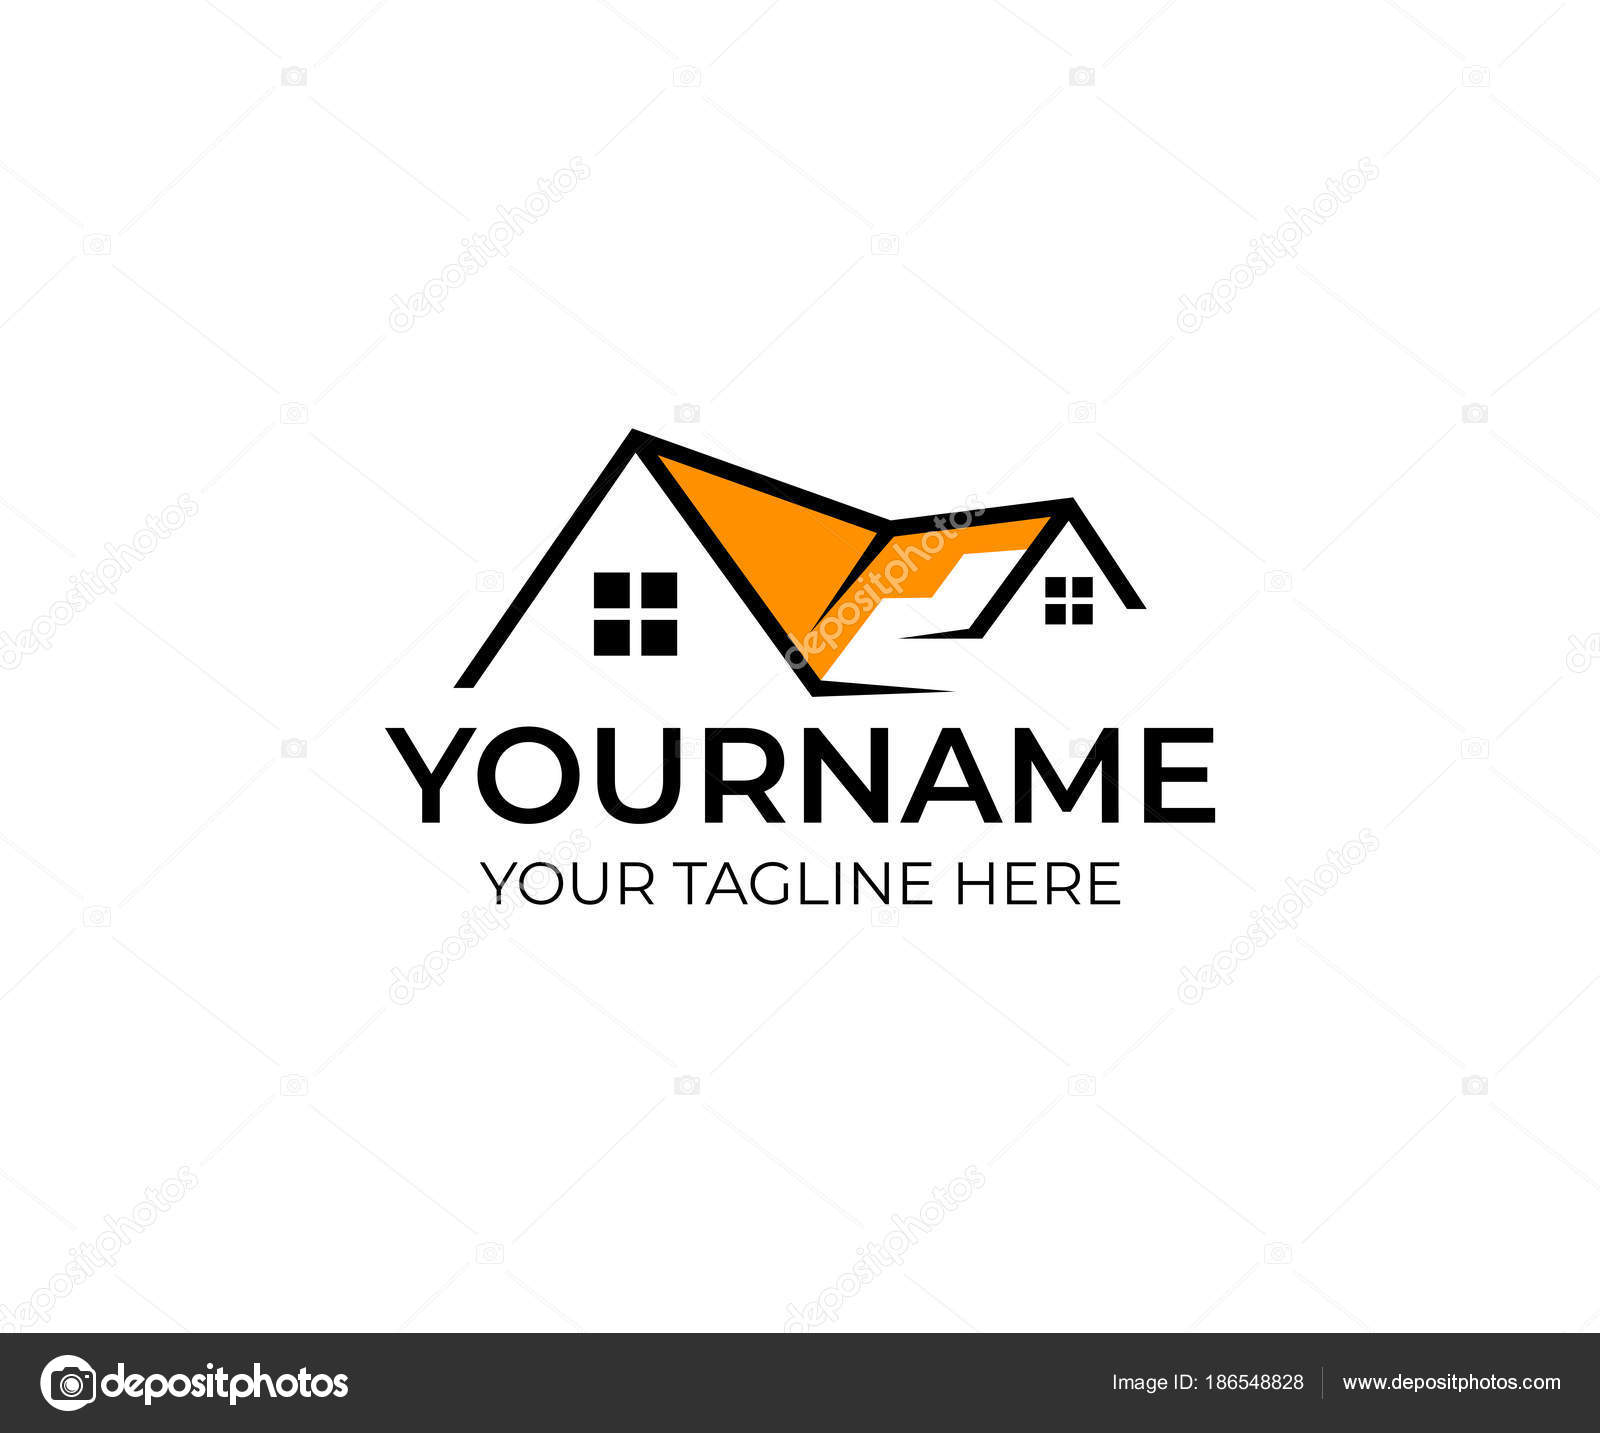 house real estate logo template home window building roof property